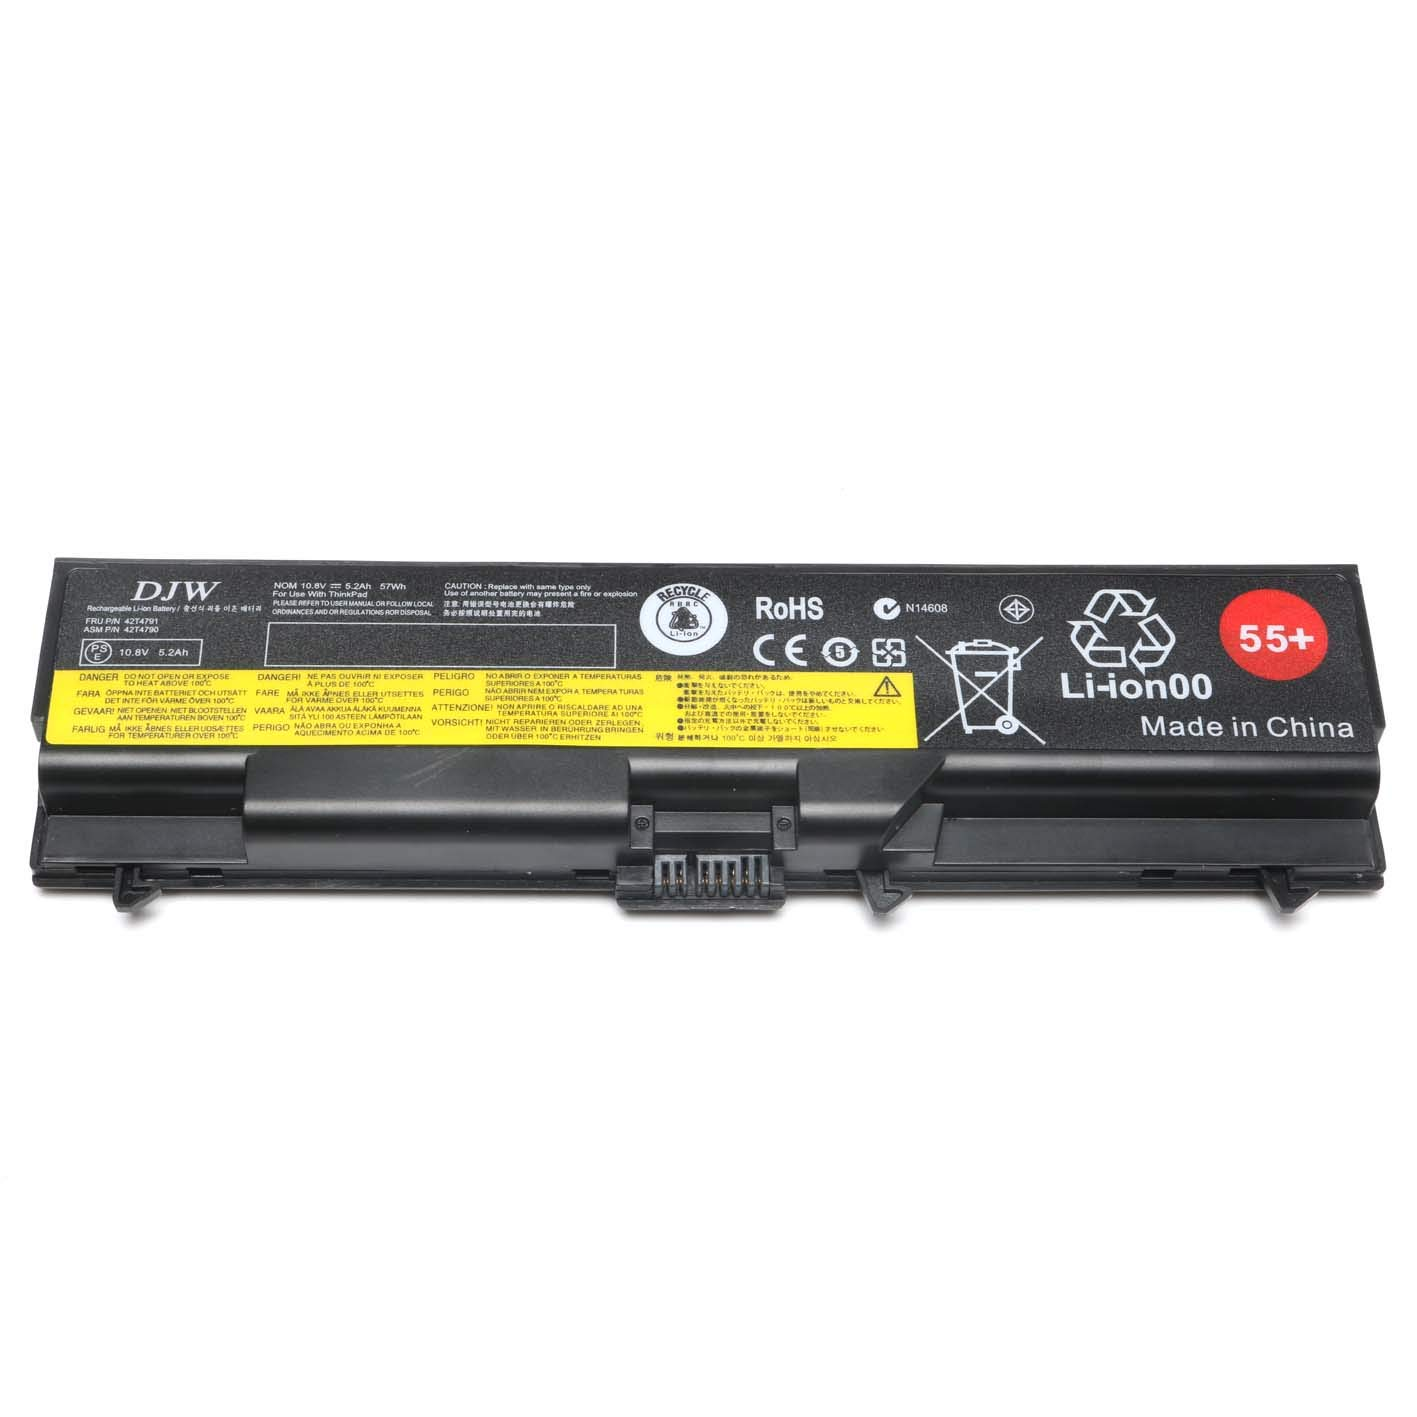 Amazon DJW 10 8V 57WH 55 Laptop Battery for Lenovo ThinkPad and IBM ThinkPad Notebook Series puters & Accessories